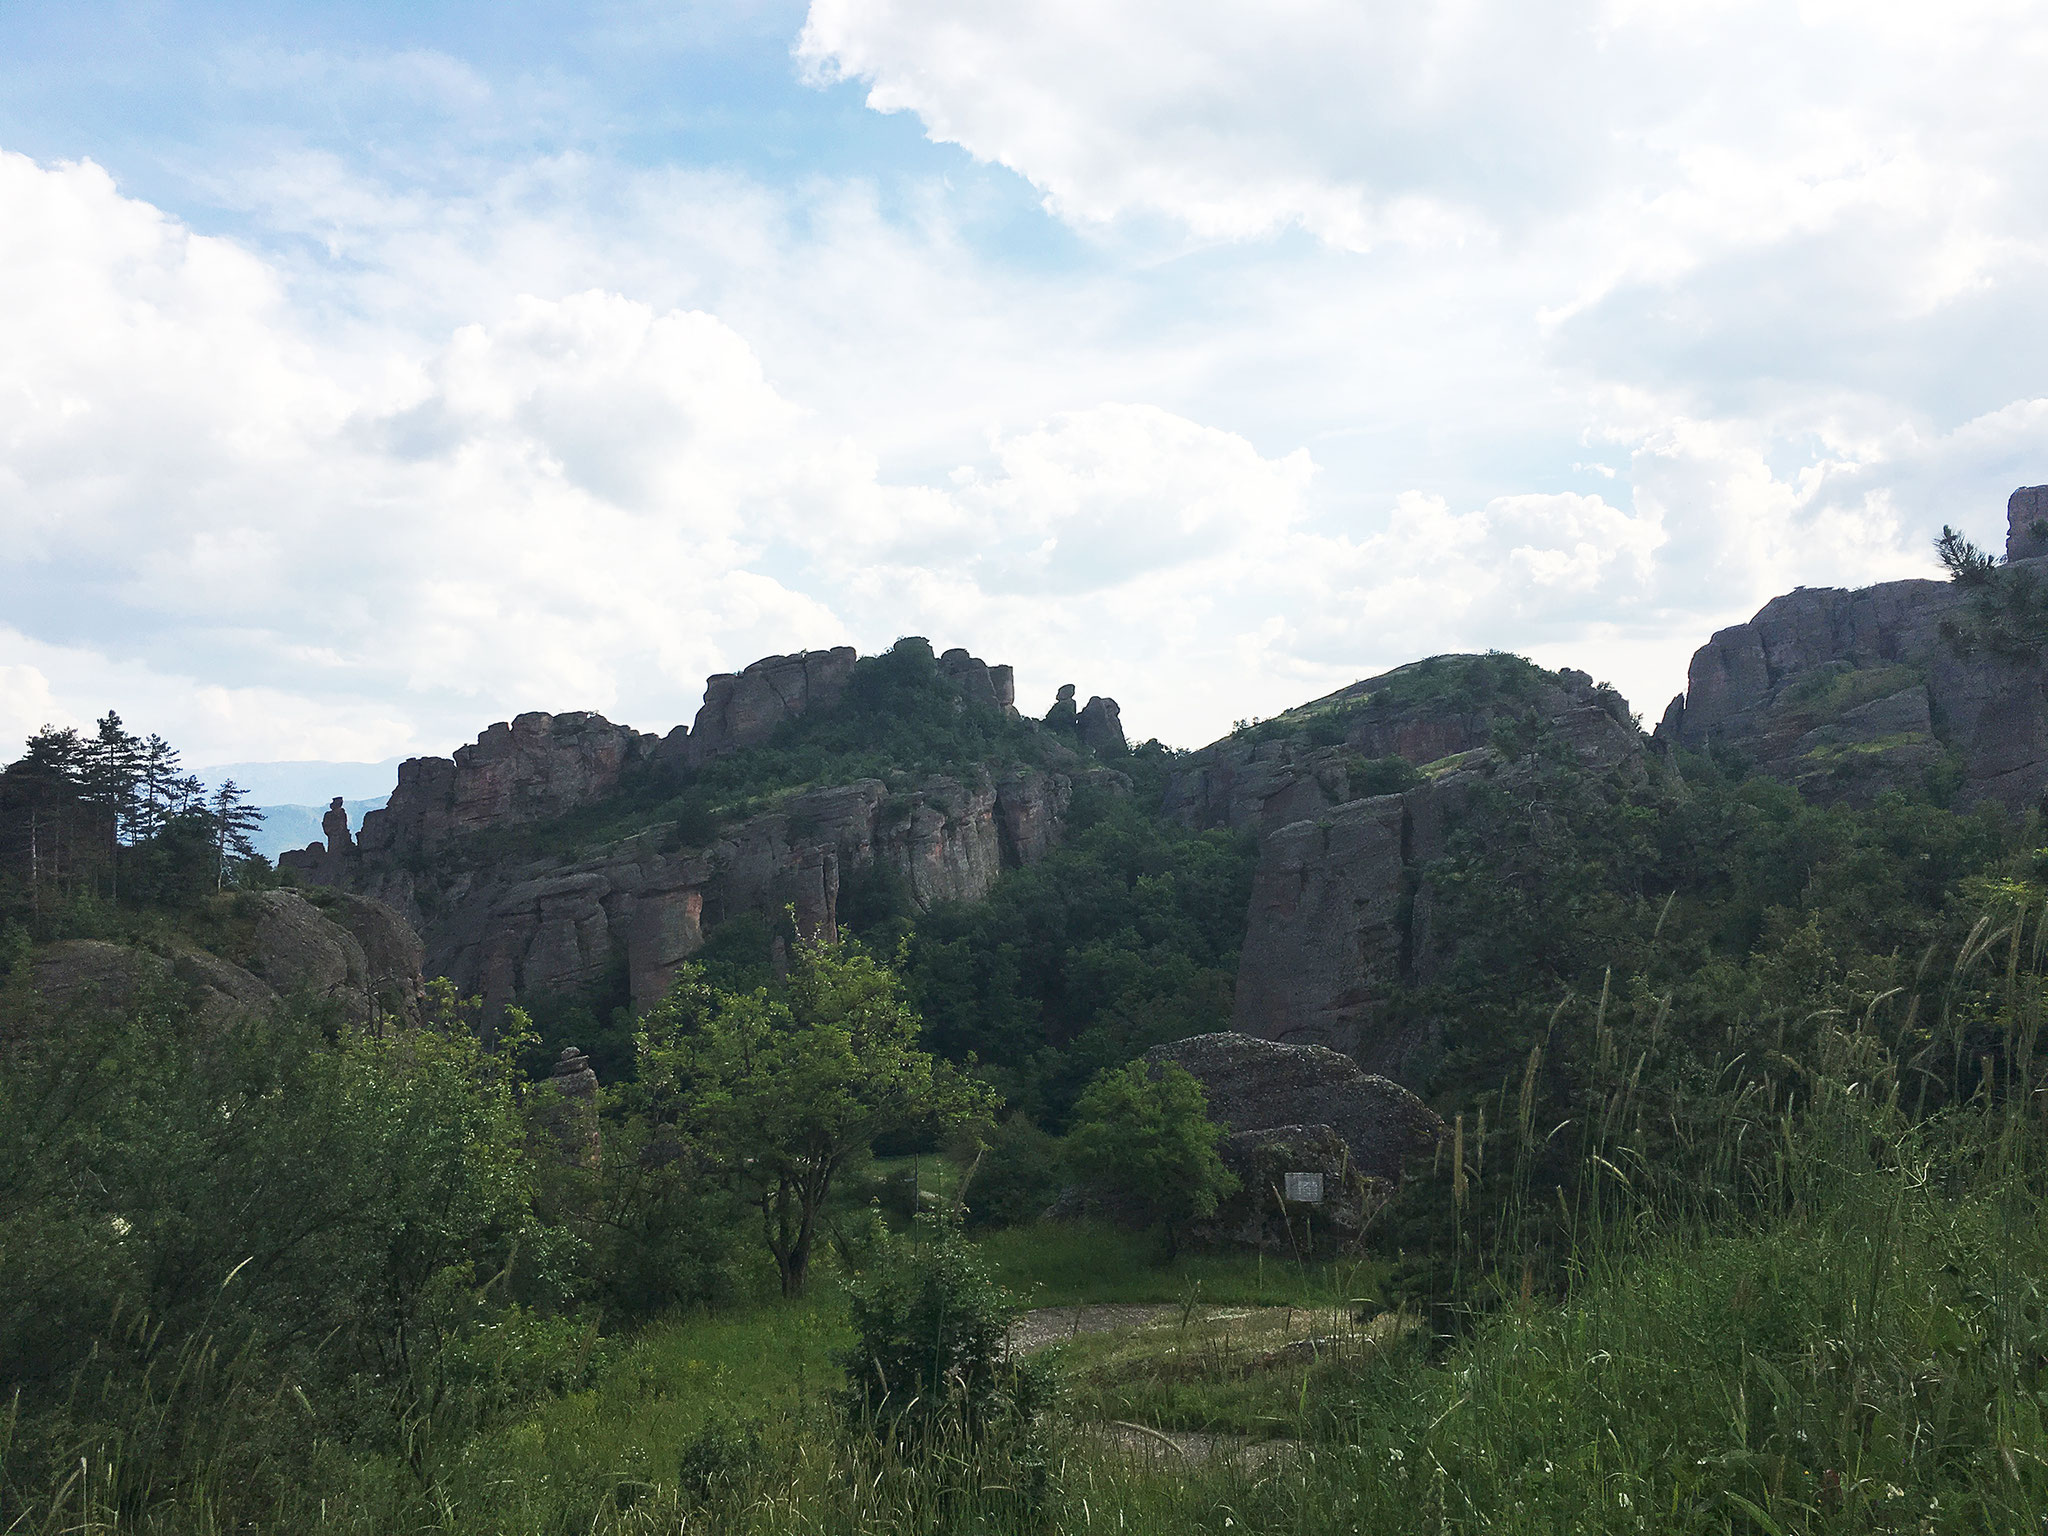 Felsen von Belogradchik, Bulgarien